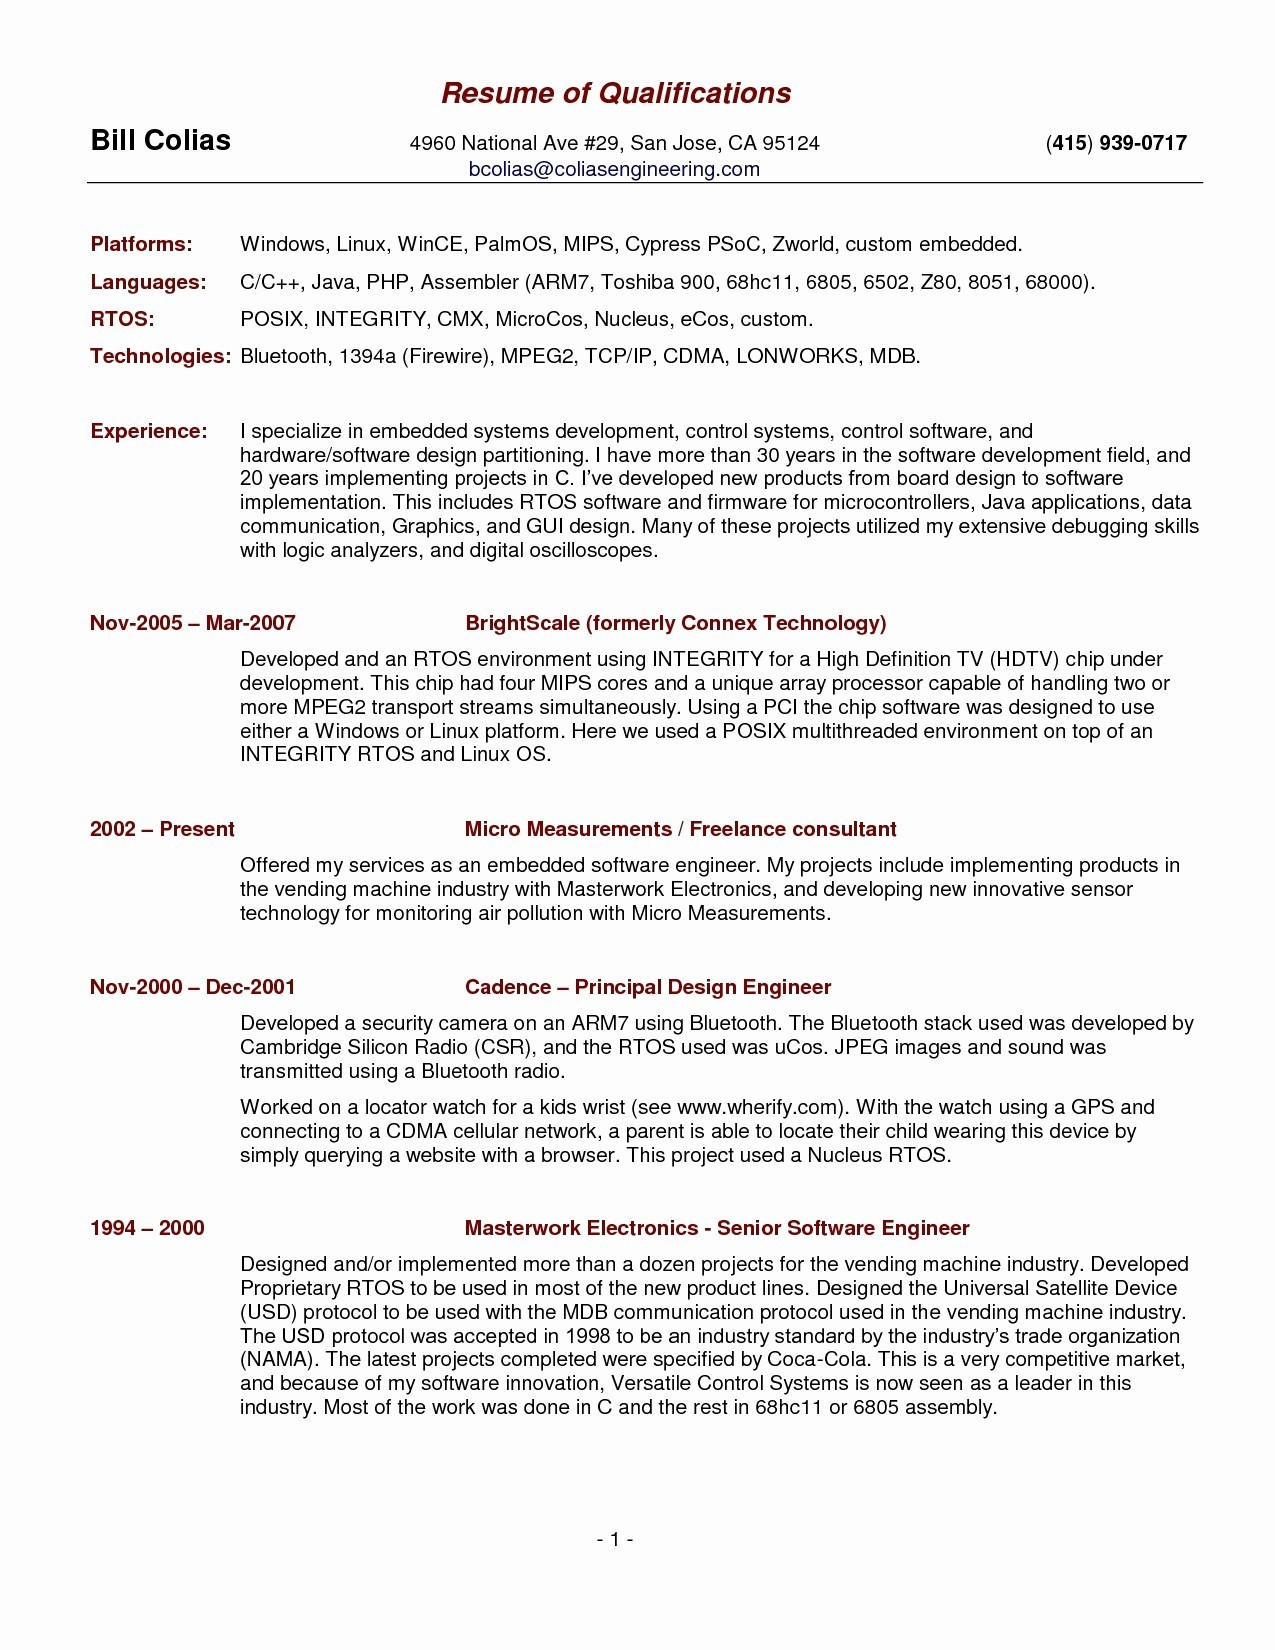 Resume Template Receptionist - Sample Resume Guide Page 150 Of 150 Edmyedguide24